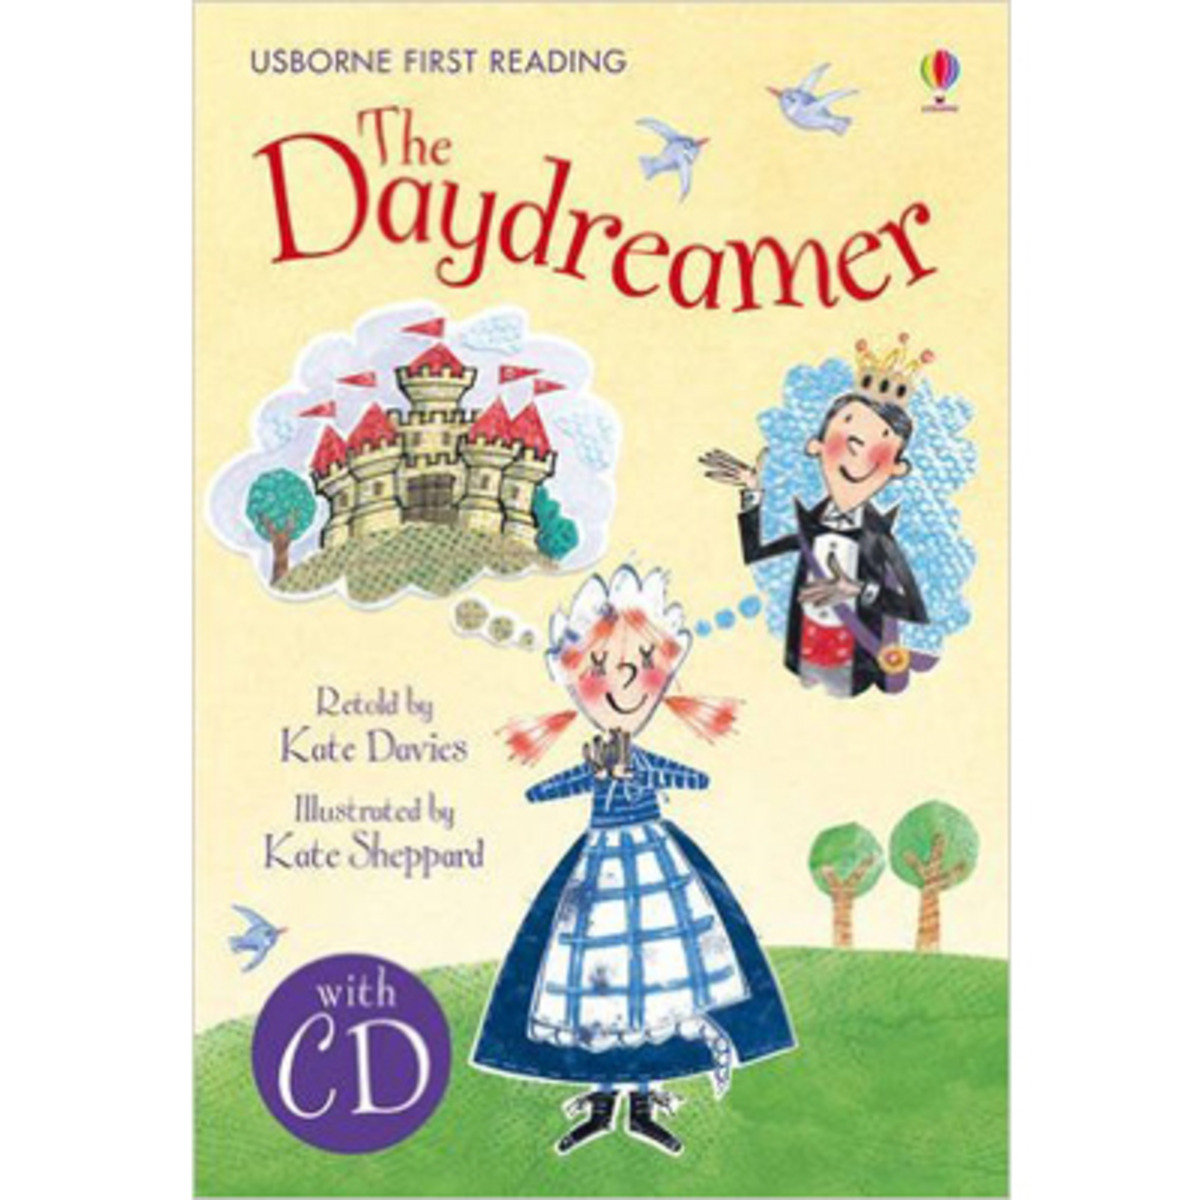 The Daydreamer - First Reading with CD